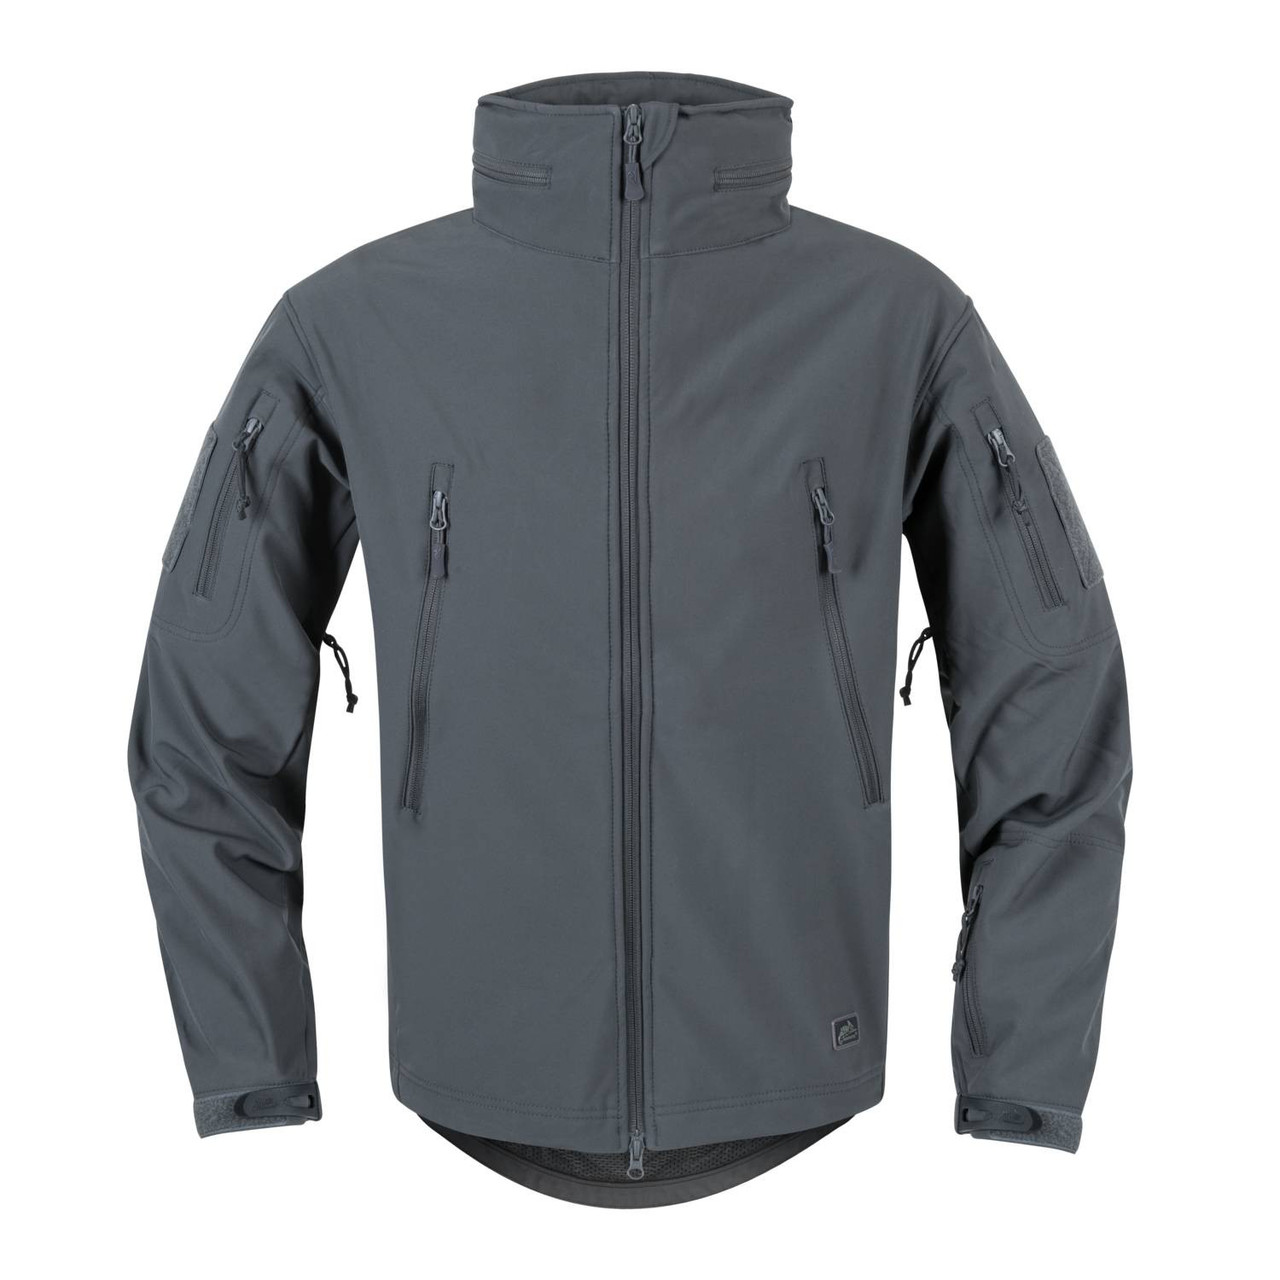 Куртка Helikon-Tex GUNFIGHTER Jacket - Soft Shell Windblocker